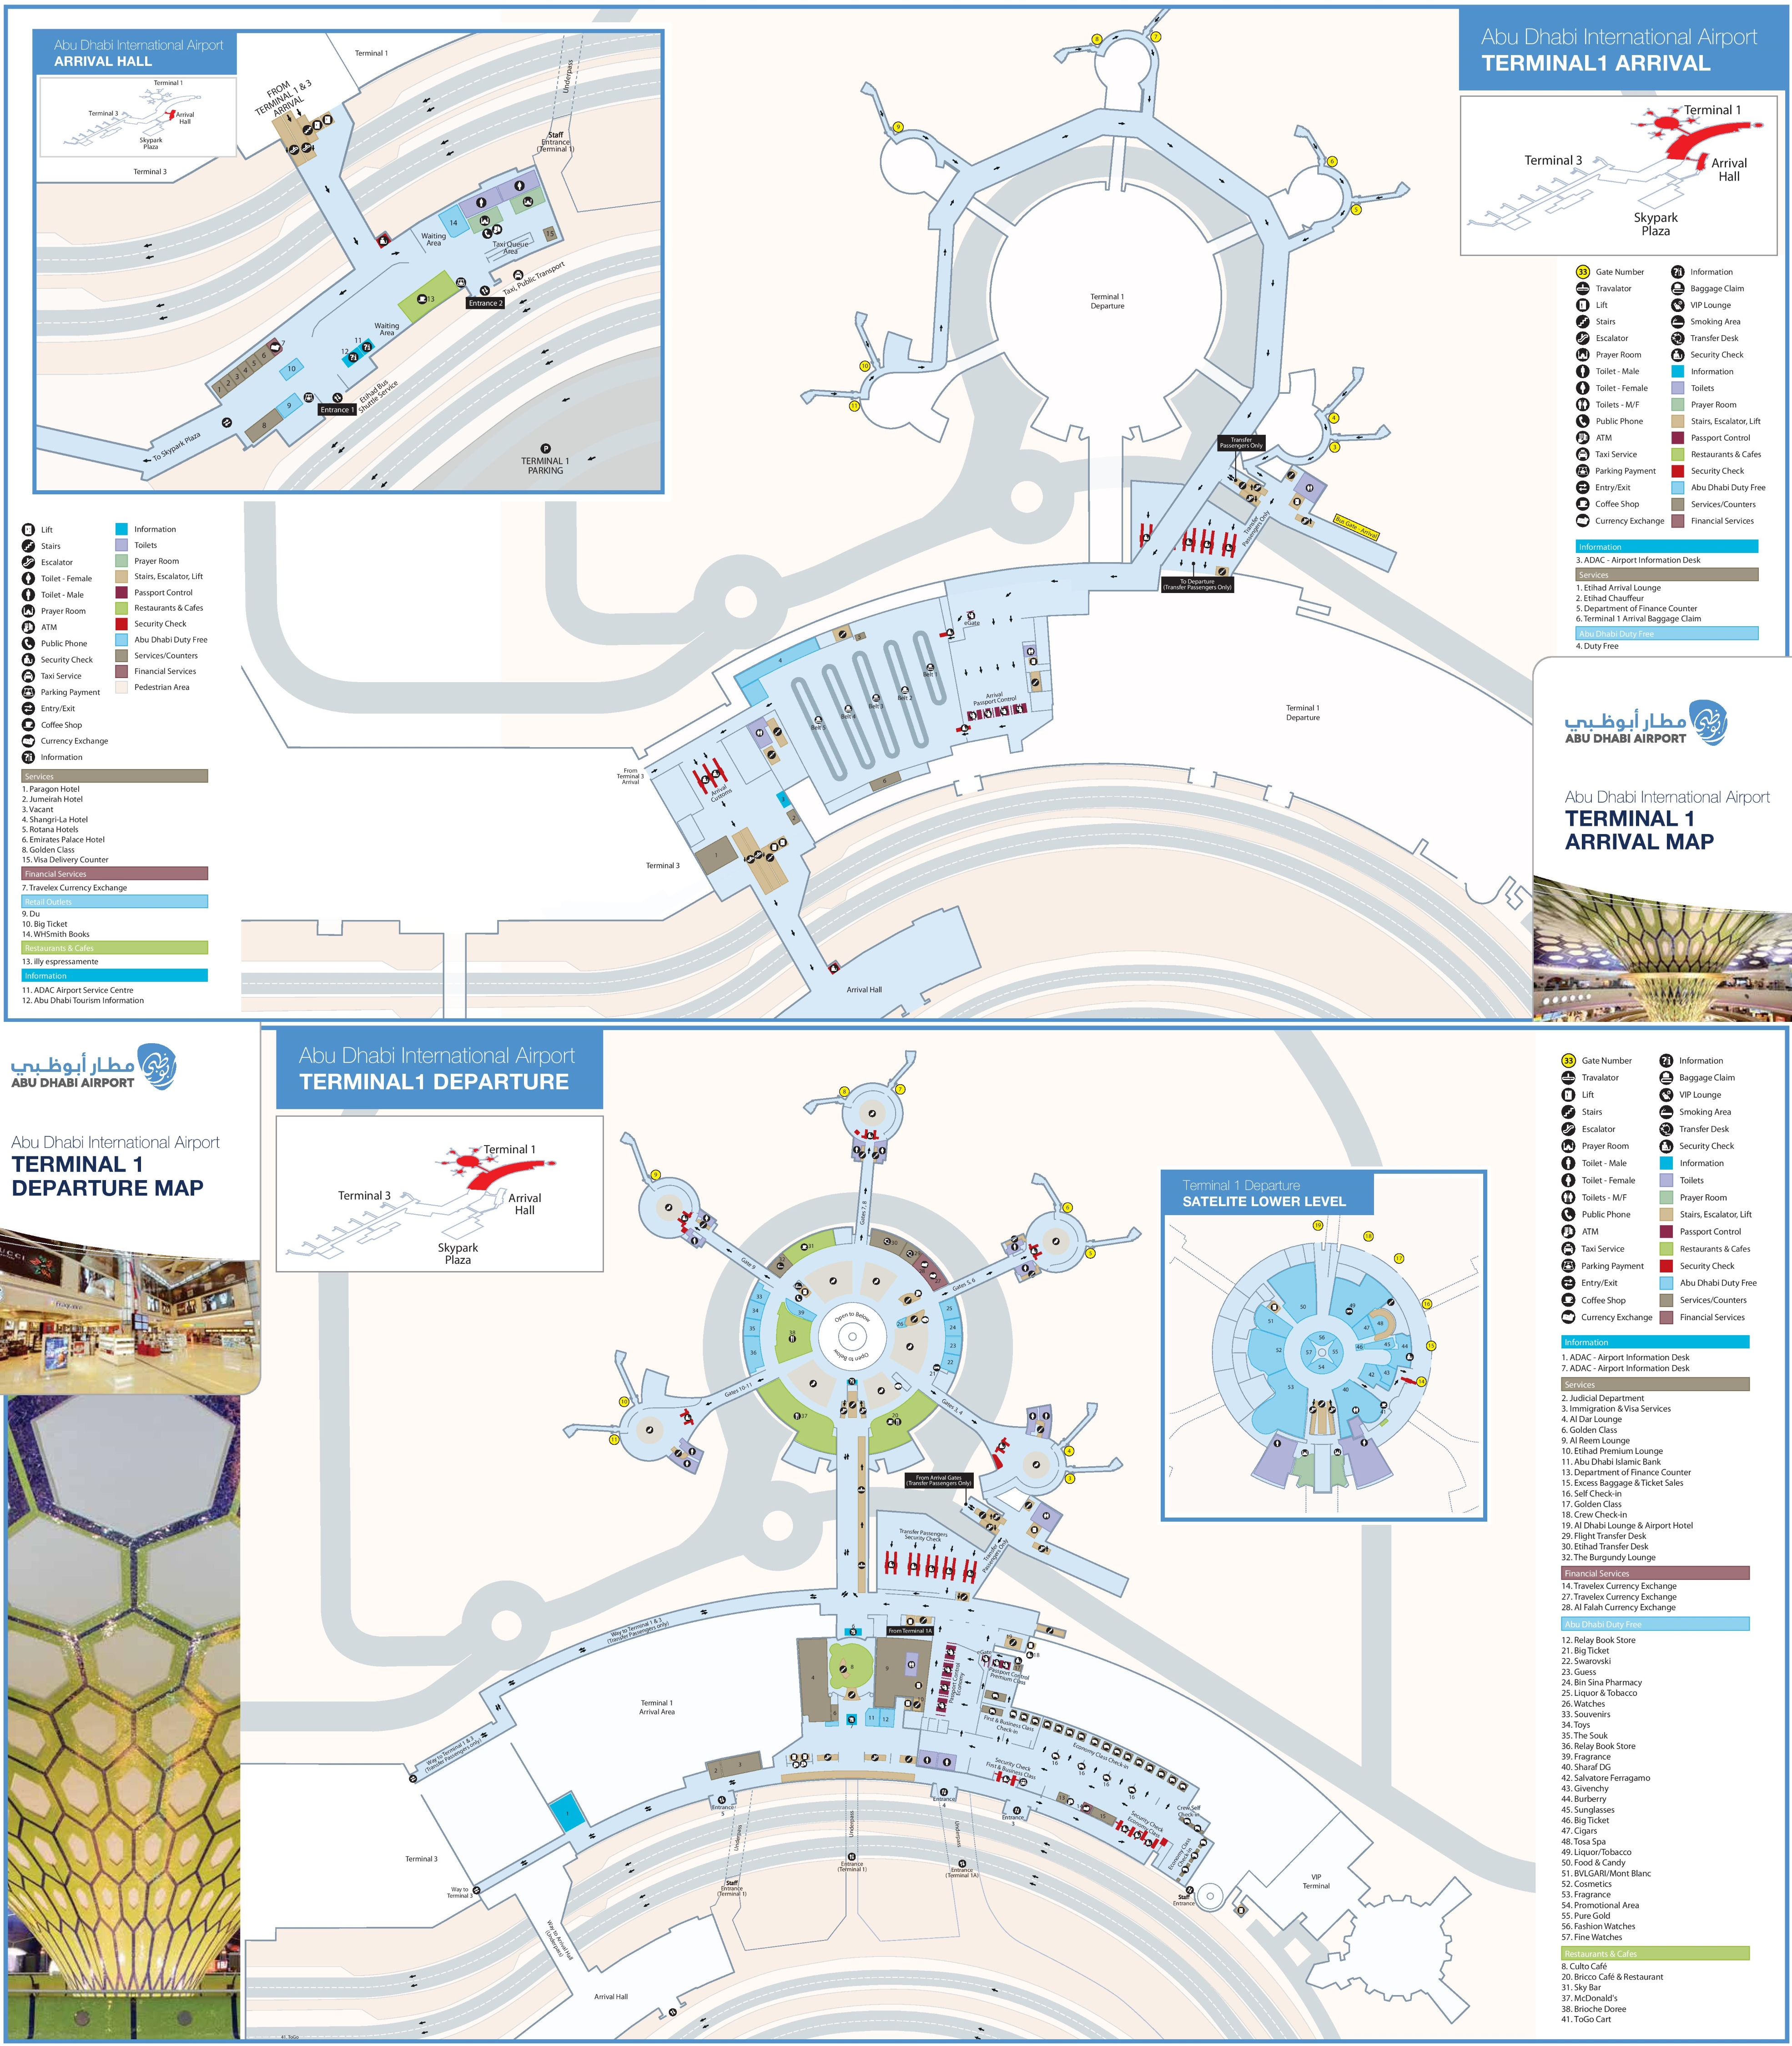 Abu Dhabi airport terminal 1 map on mauritius and map, playa del carmen and map, miami and map, belgium and map, san francisco and map, los angeles and map, washington and map, croatia and map, rio de janeiro and map, boston and map, lebanon and map, hungary and map, jordan and map, panama and map, mexico and map, malta and map, pakistan and map, prague and map, asia and map, machu picchu and map,